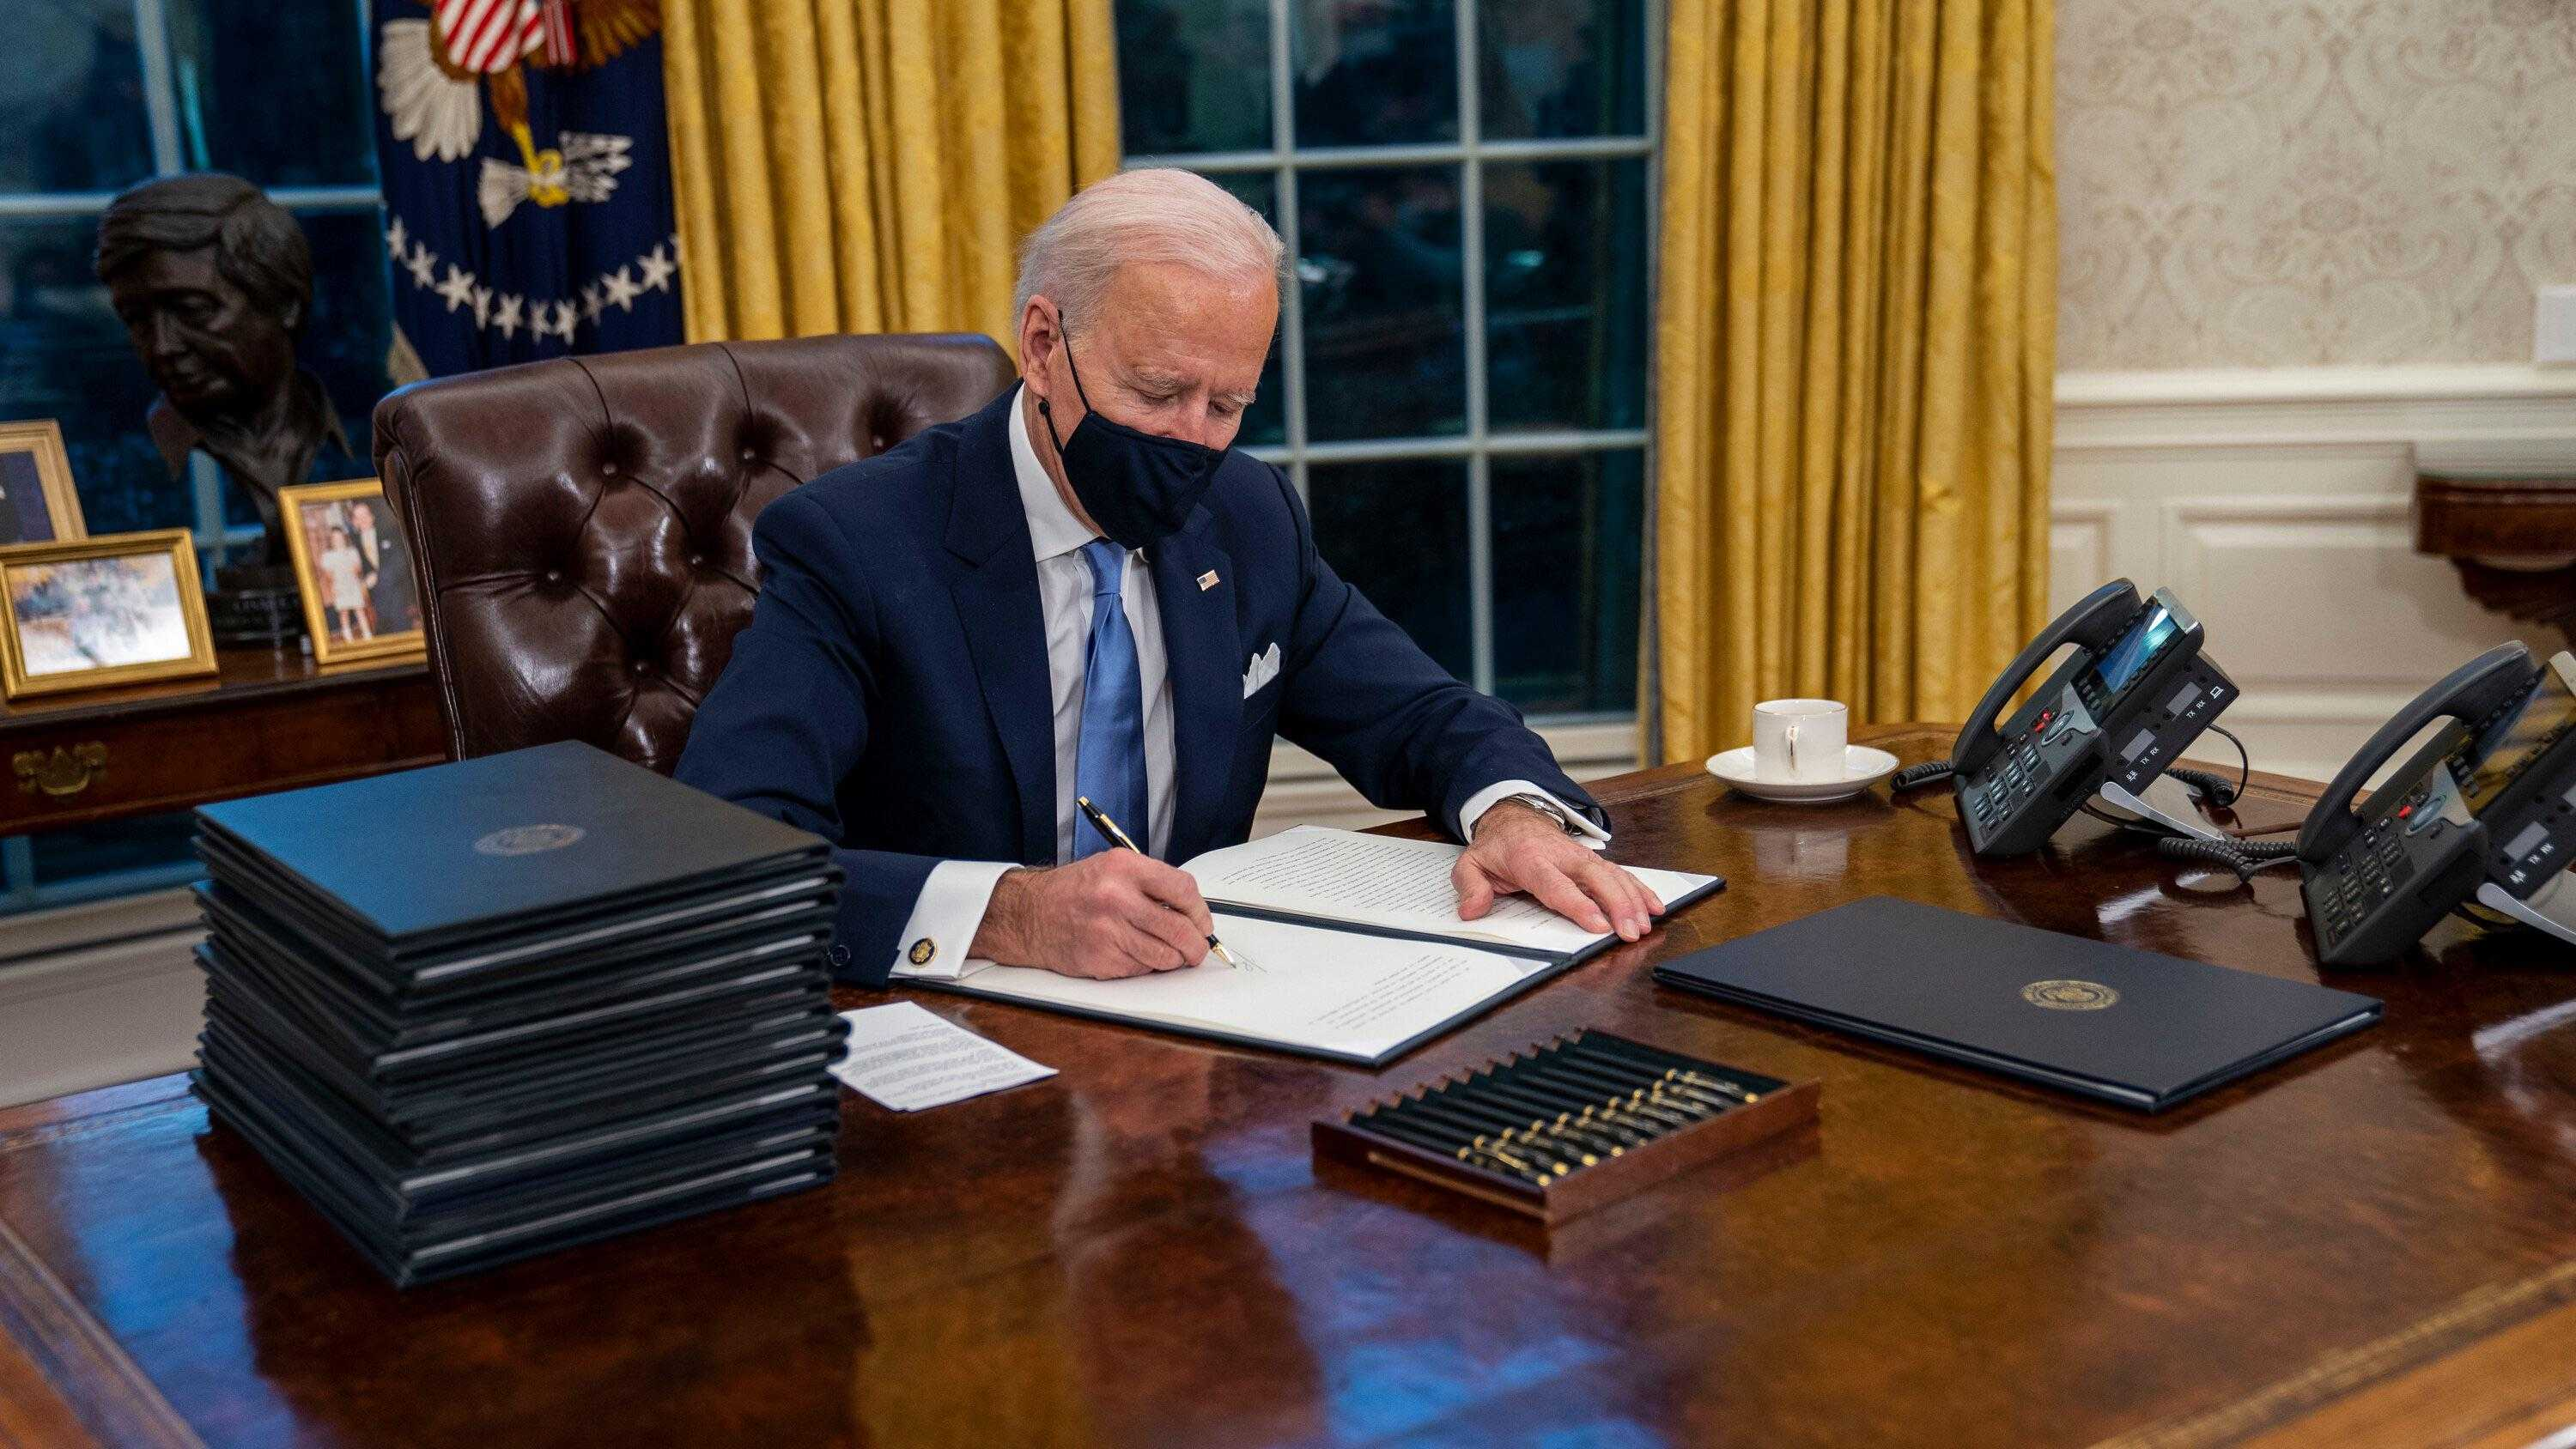 Biden Oval Office Wallpaper 3